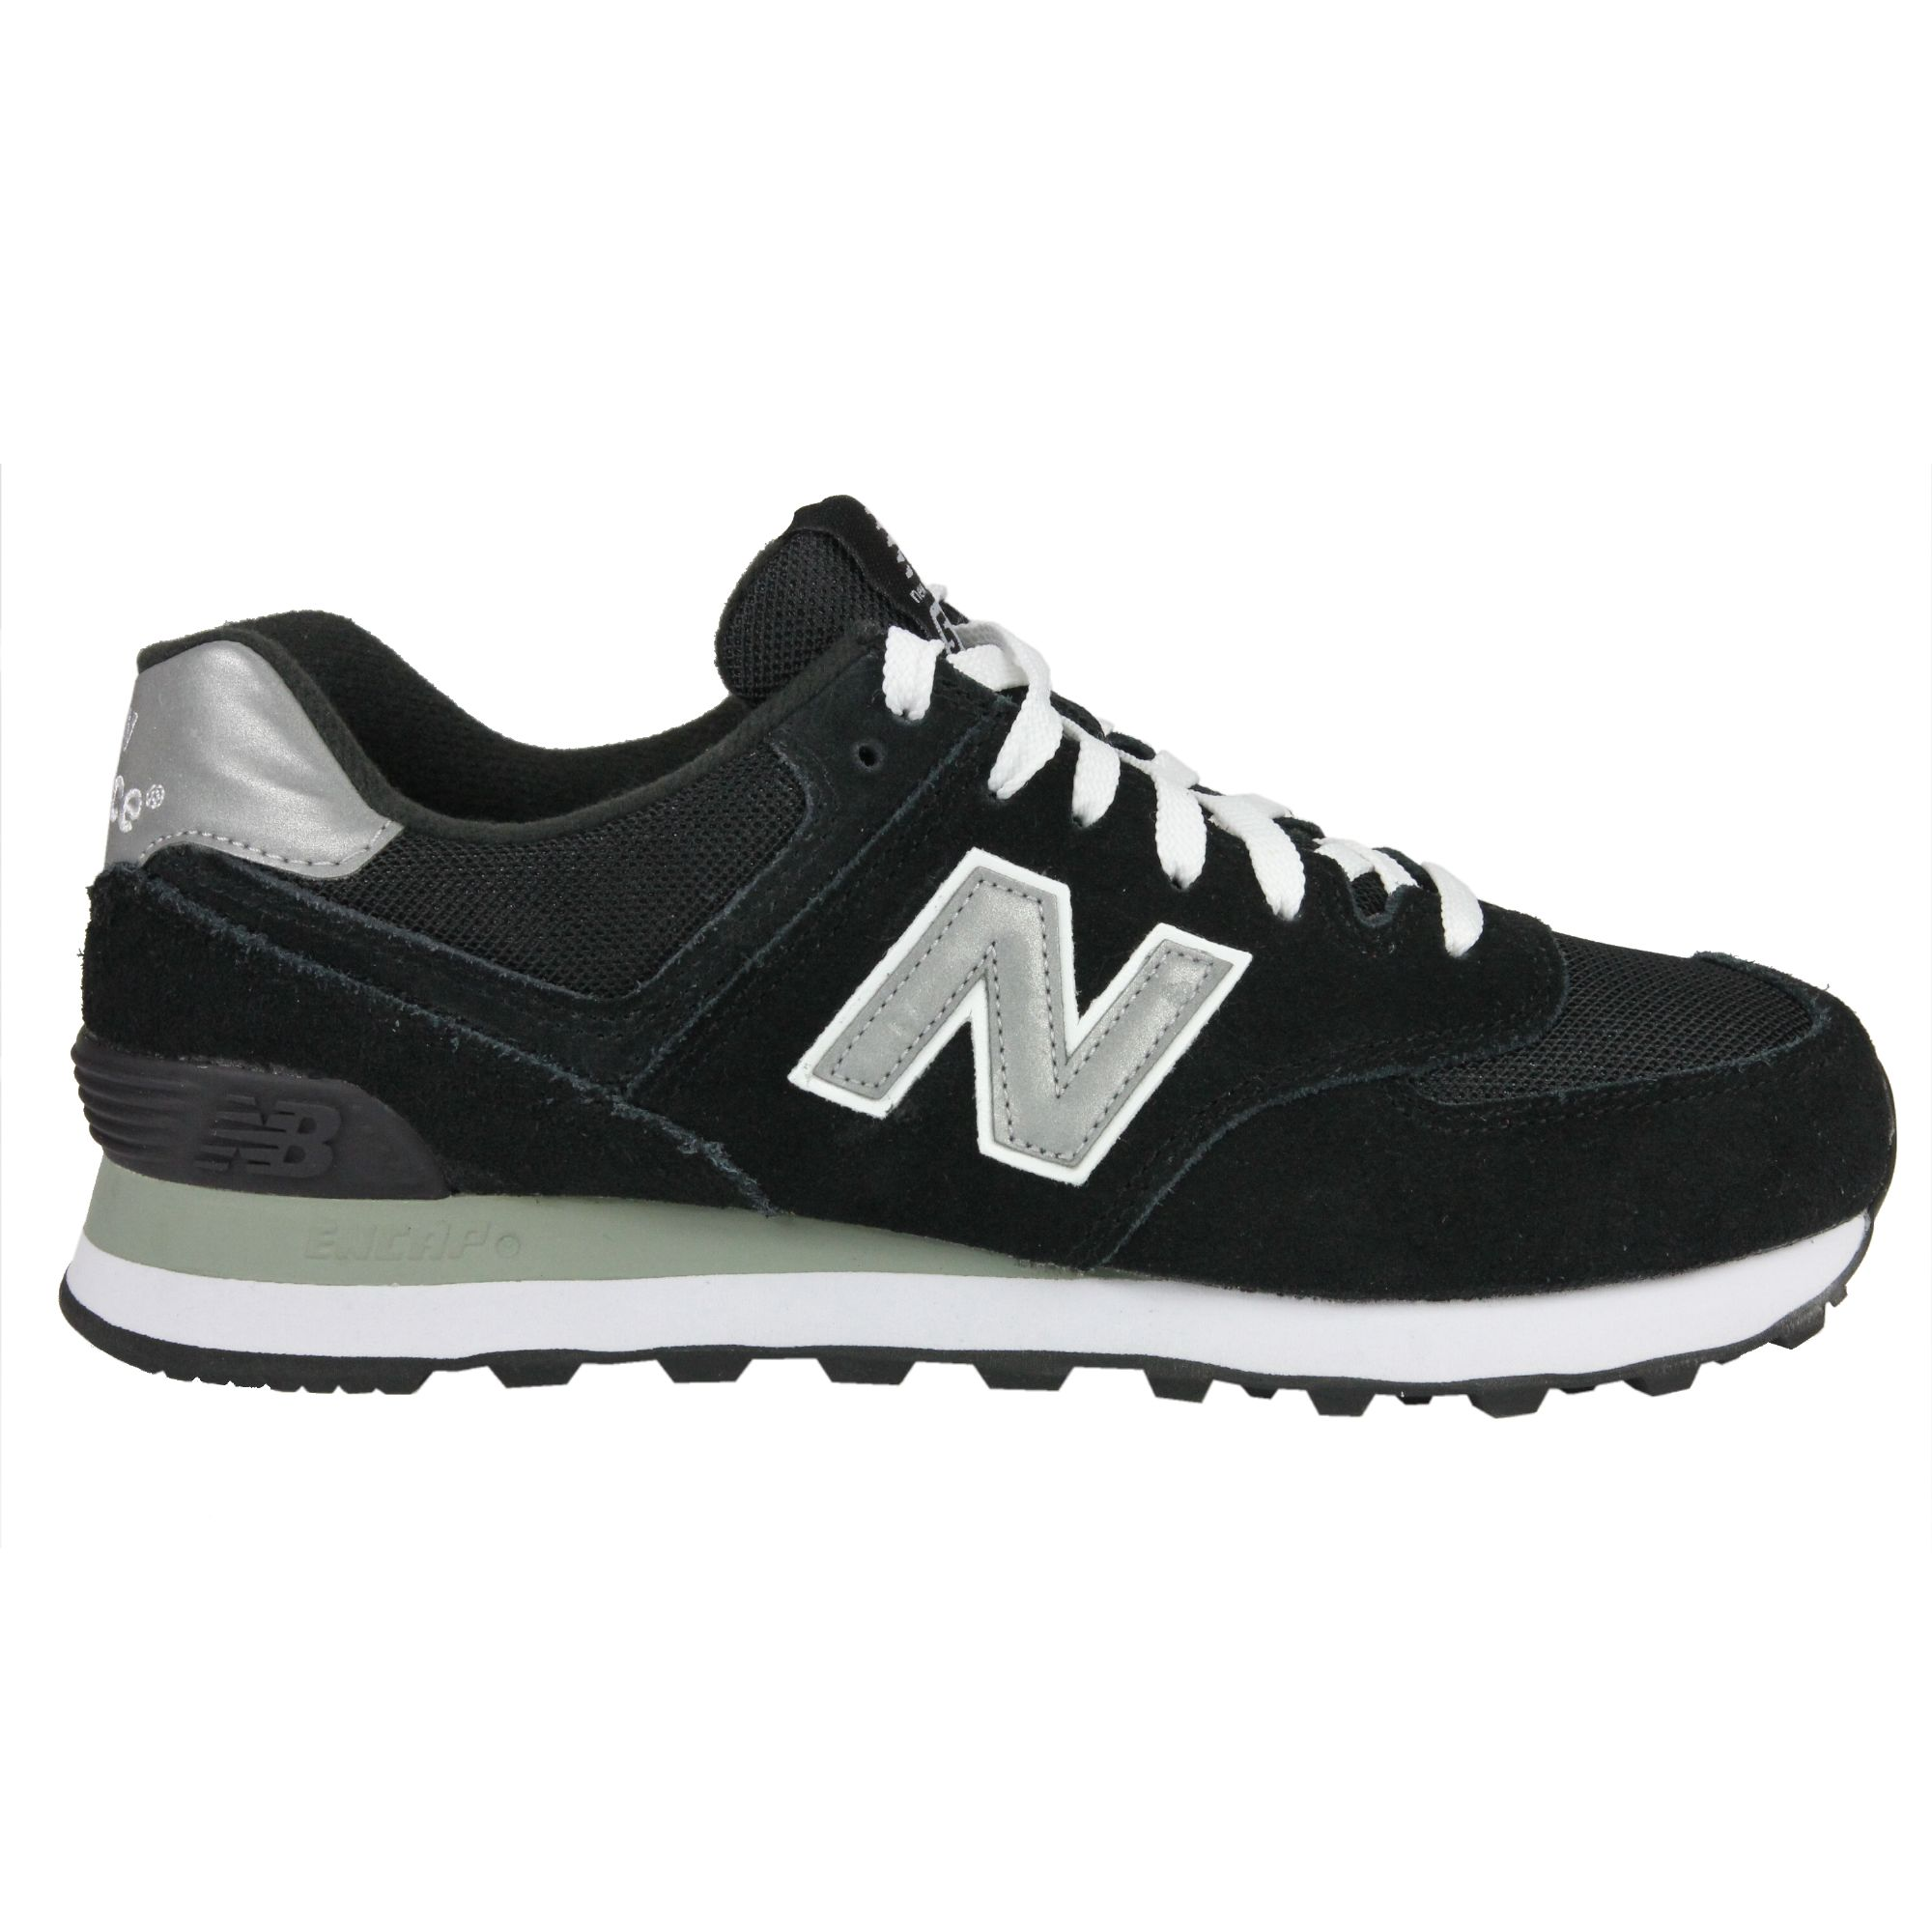 new balance m574 gs nn nk schuhe sneaker herren damen grau blau schwarz ebay. Black Bedroom Furniture Sets. Home Design Ideas